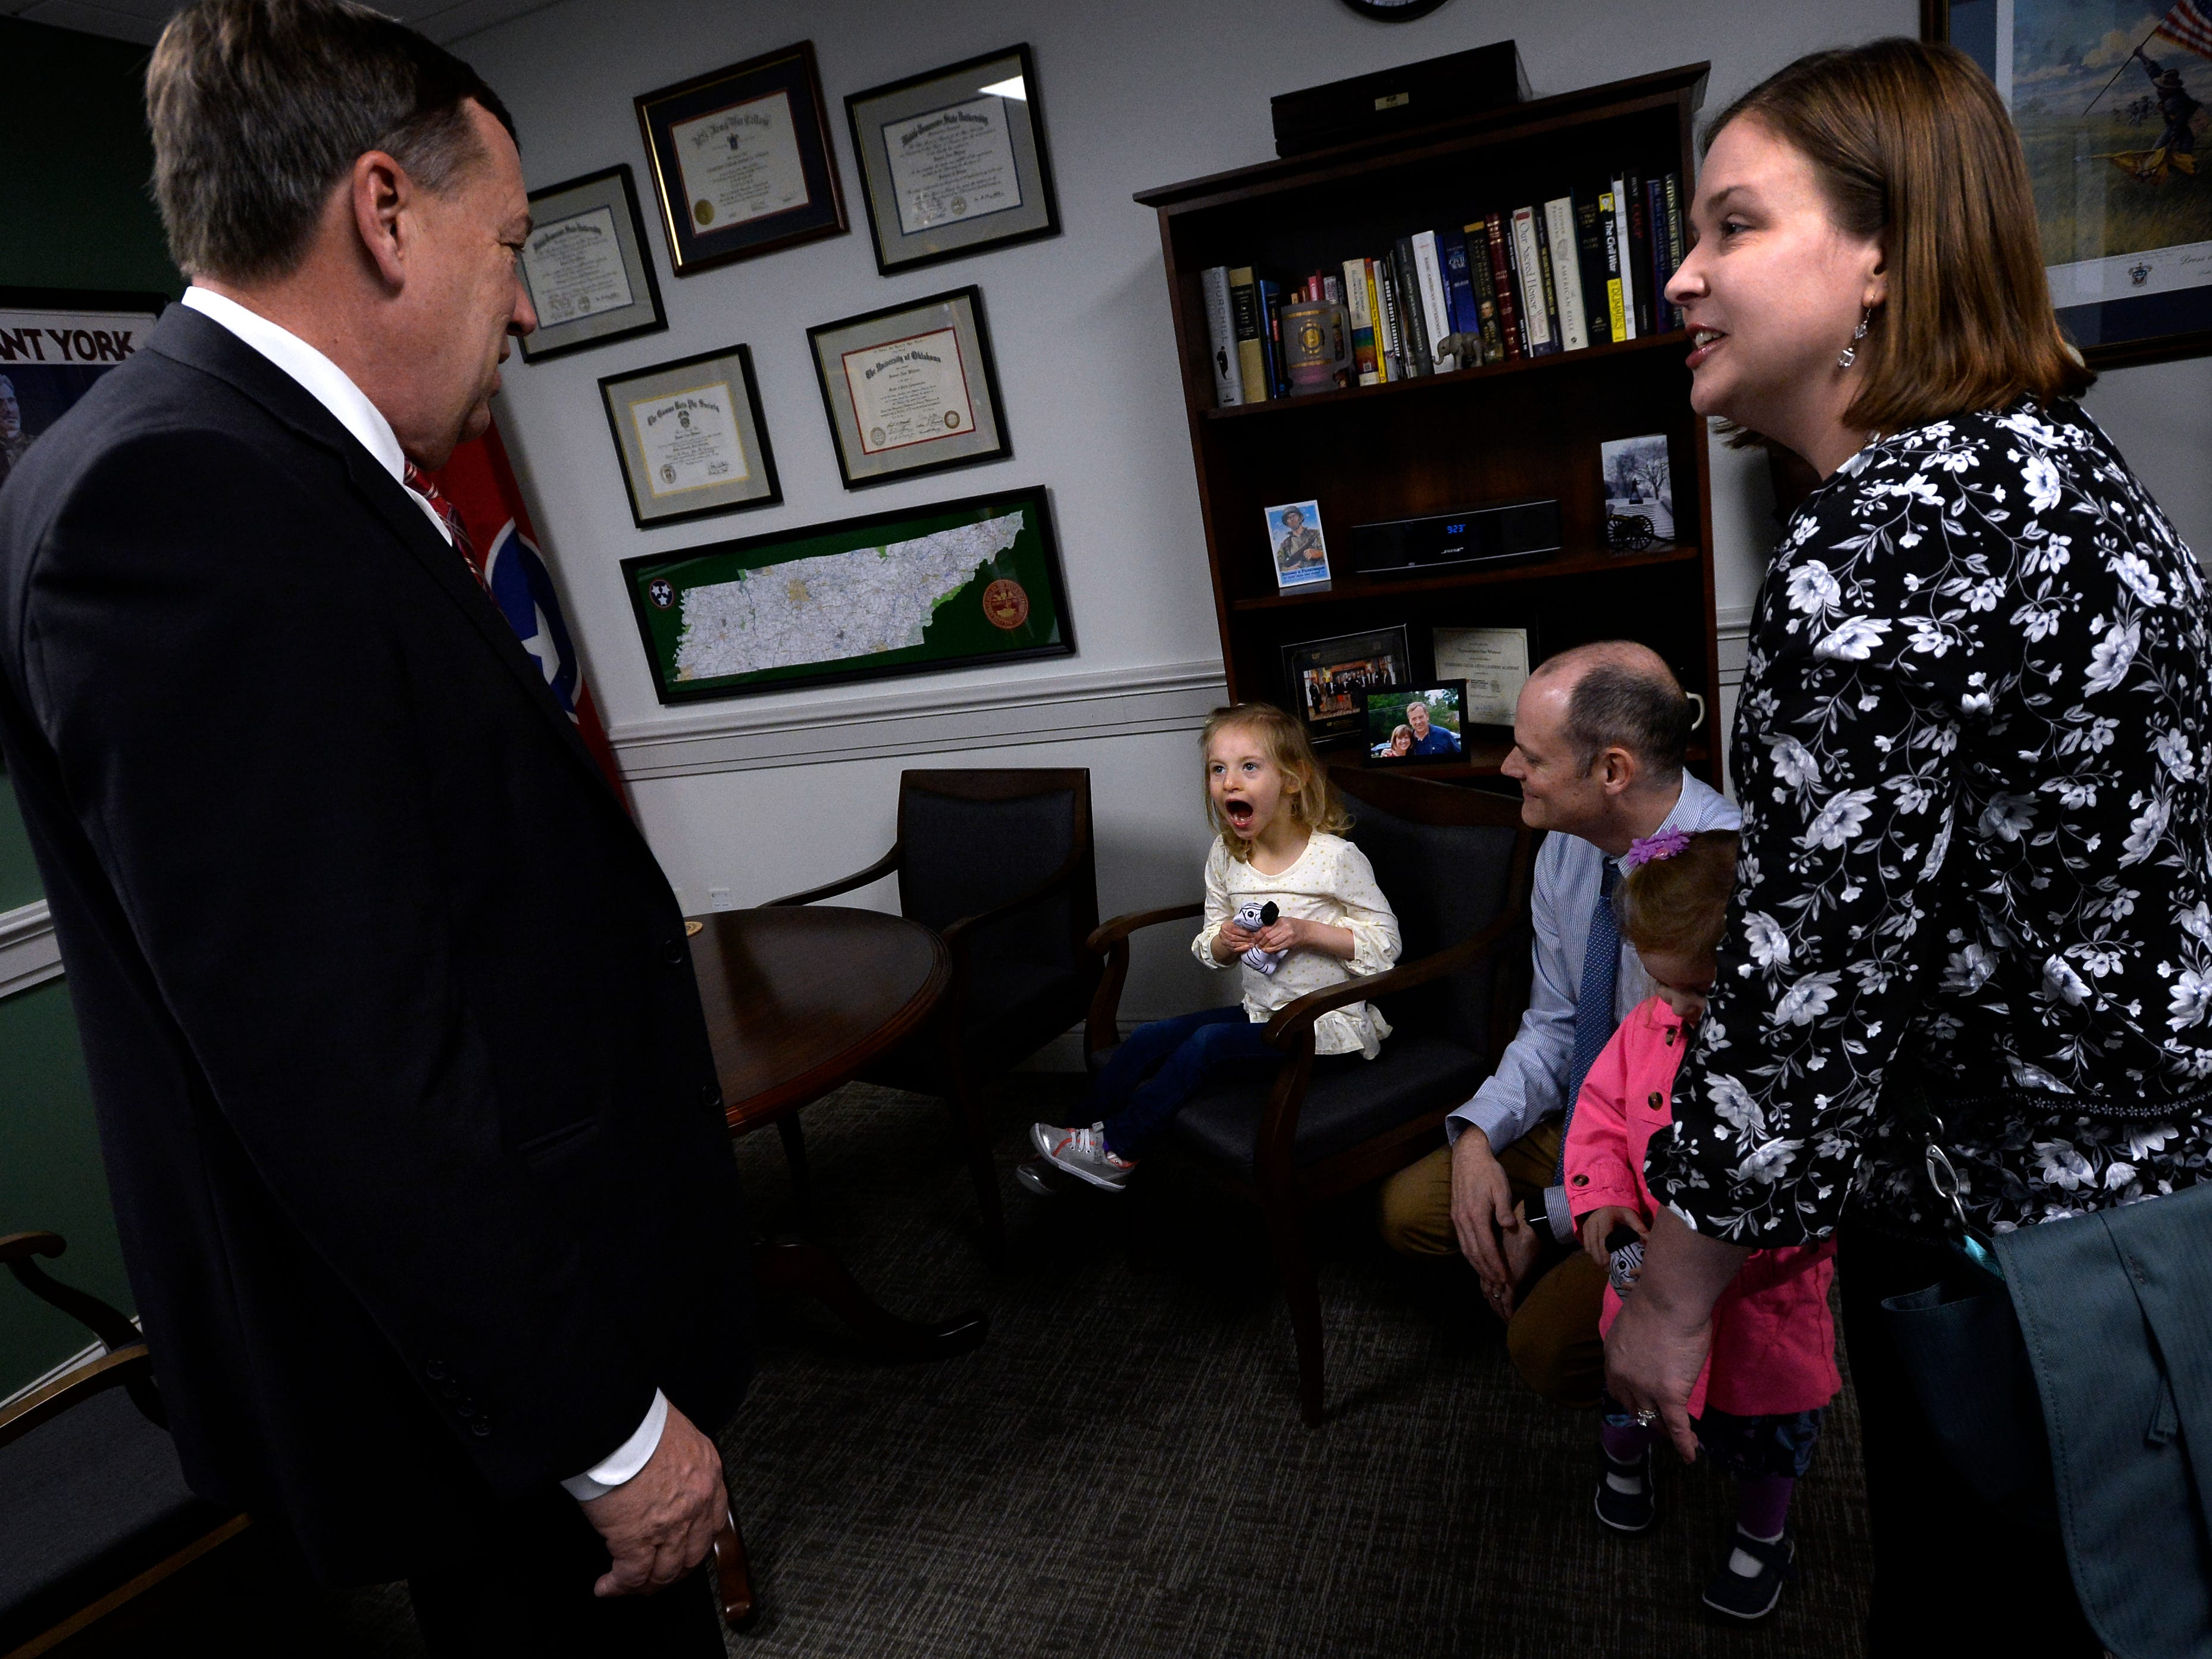 Claire Fox, 4, who has cri du chat syndrome, center, her father Sean and mother Jessica, right, meet with State Rep. Sam Whitson, R-Franklin, left, during Disability Day on the Hill Tuesday, Feb. 12, 2019, in Nashville, Tenn. Families and advocates of people with disabilities in Tennessee met with lawmakers to express concerns and the needs of the disabled in the state.